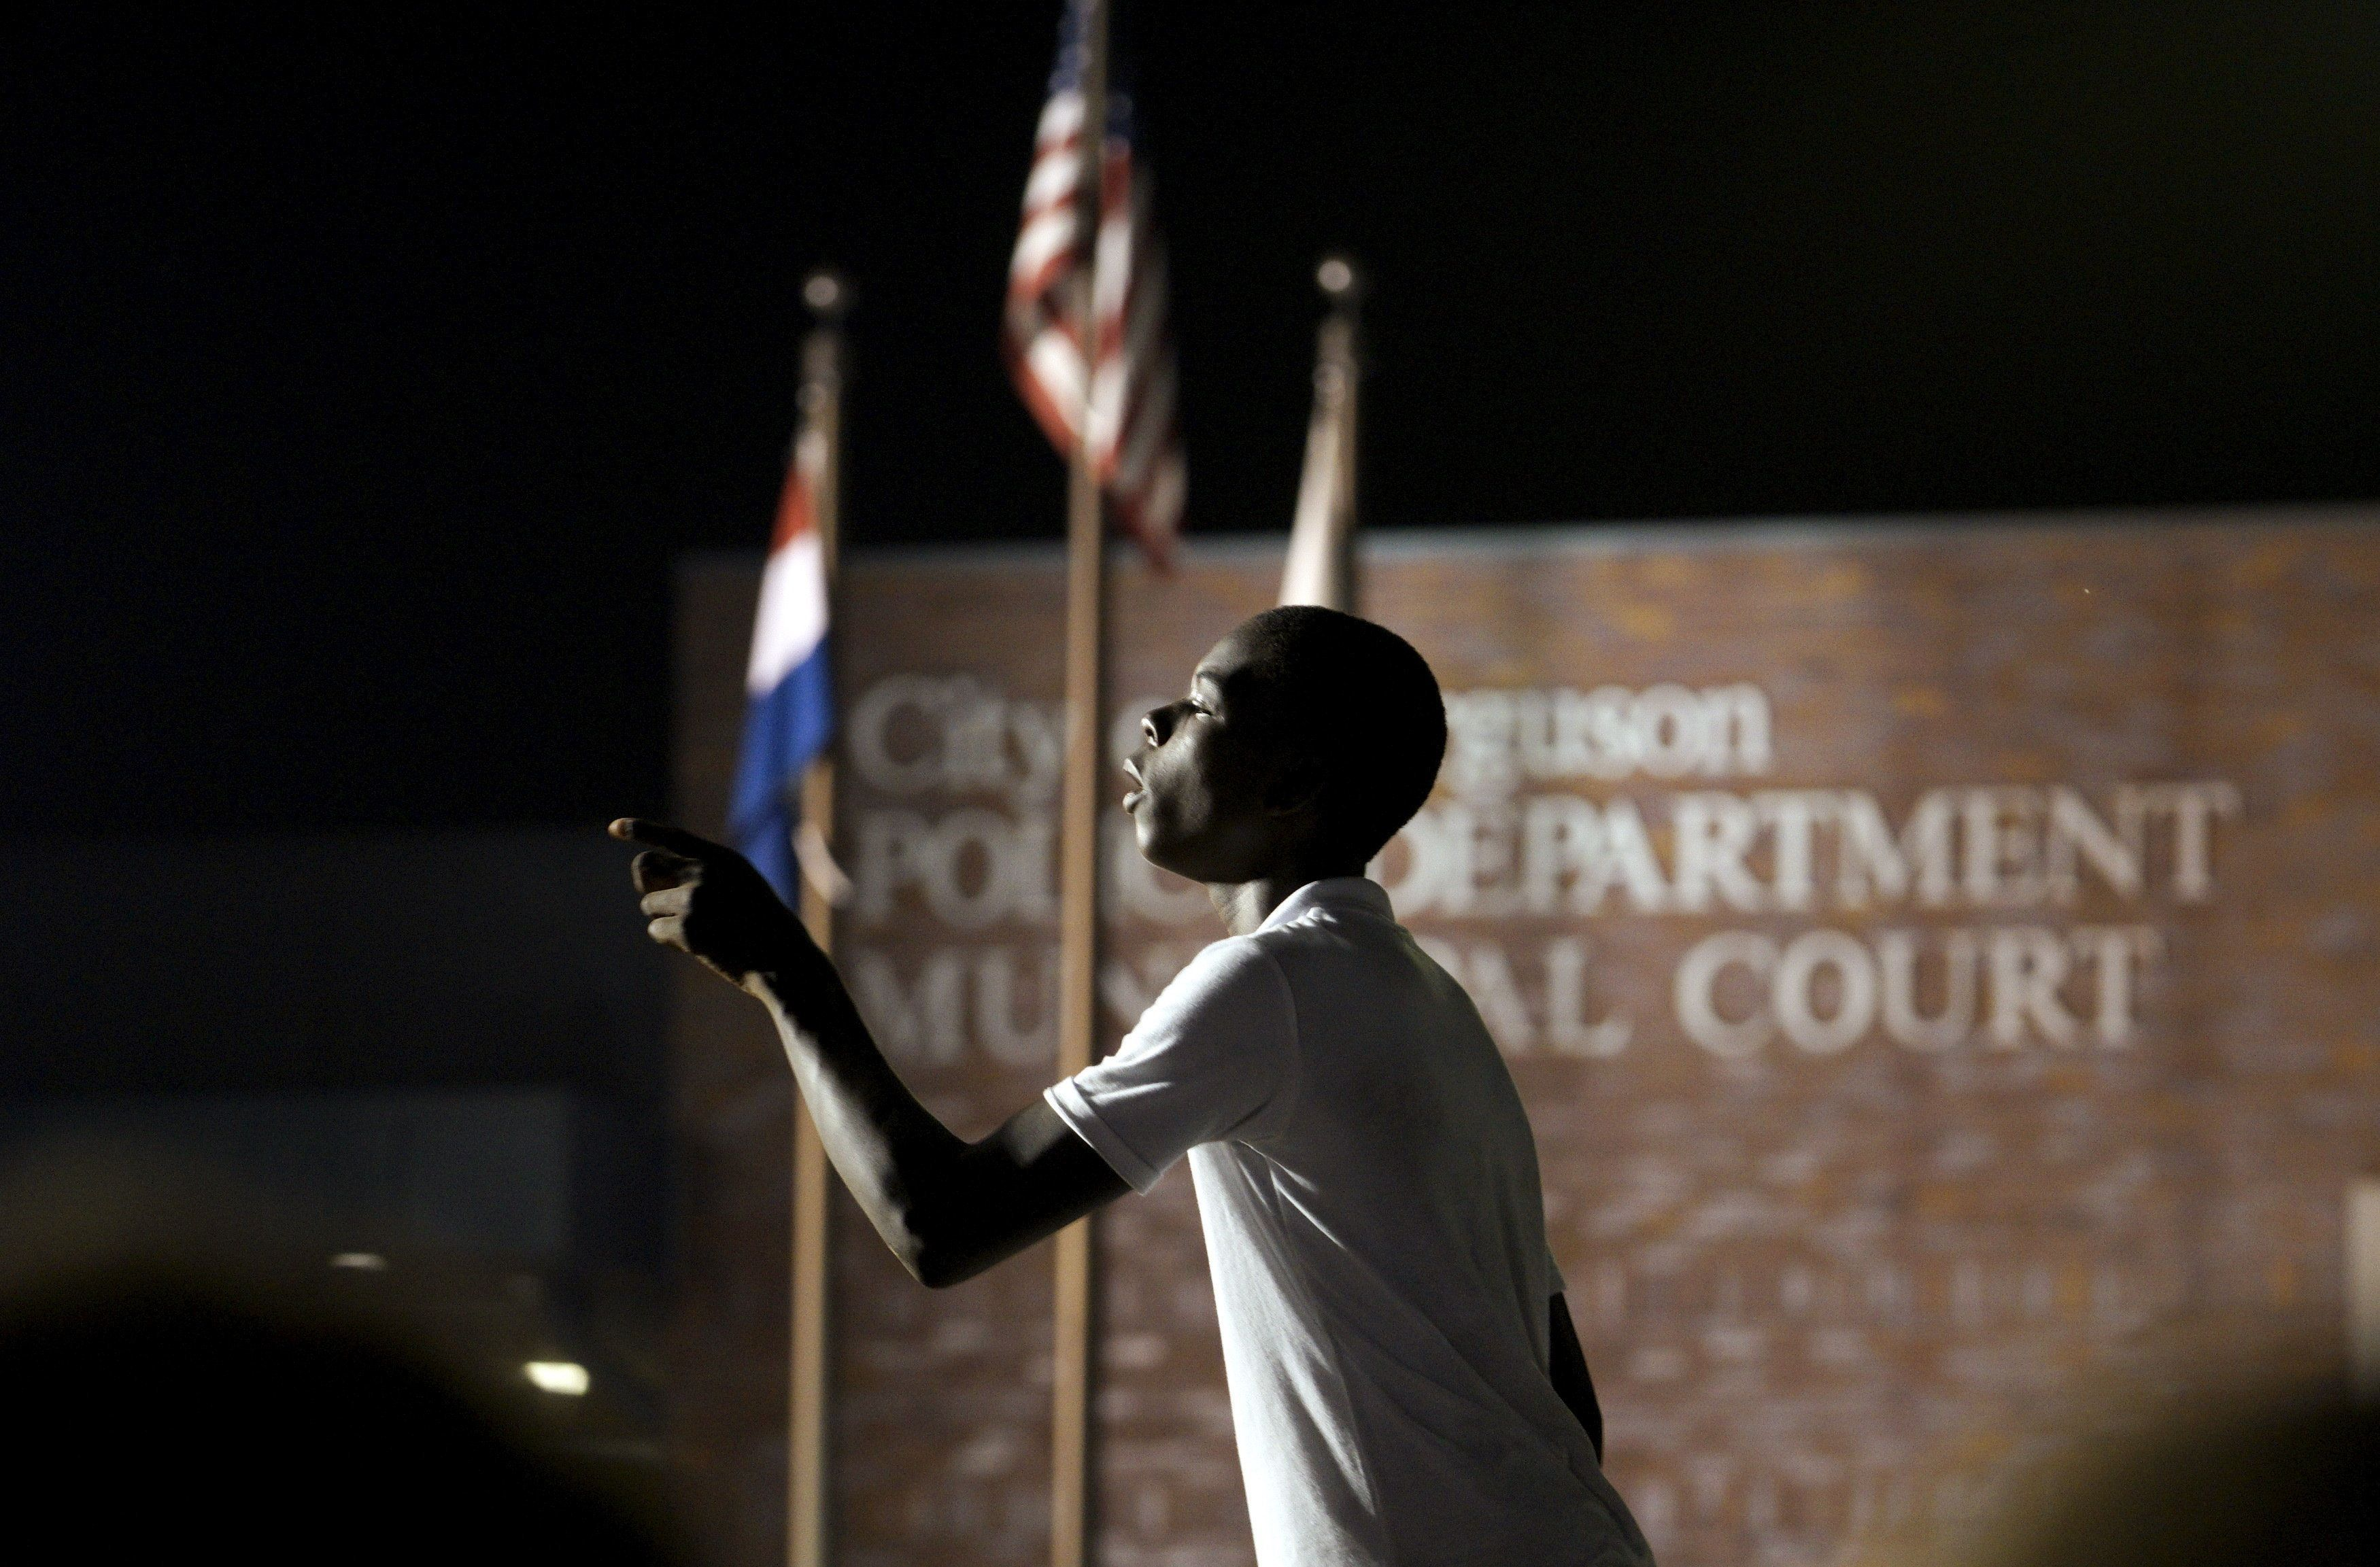 A protester yells at police stationed outside the police department in Ferguson, Missouri August 8, 2015.  One year after the police shooting of an unarmed black teen thrust Ferguson, into the national spotlight, the St. Louis suburb is bracing for a weekend of protests over continued complaints of police violence.  REUTERS/Rick Wilking